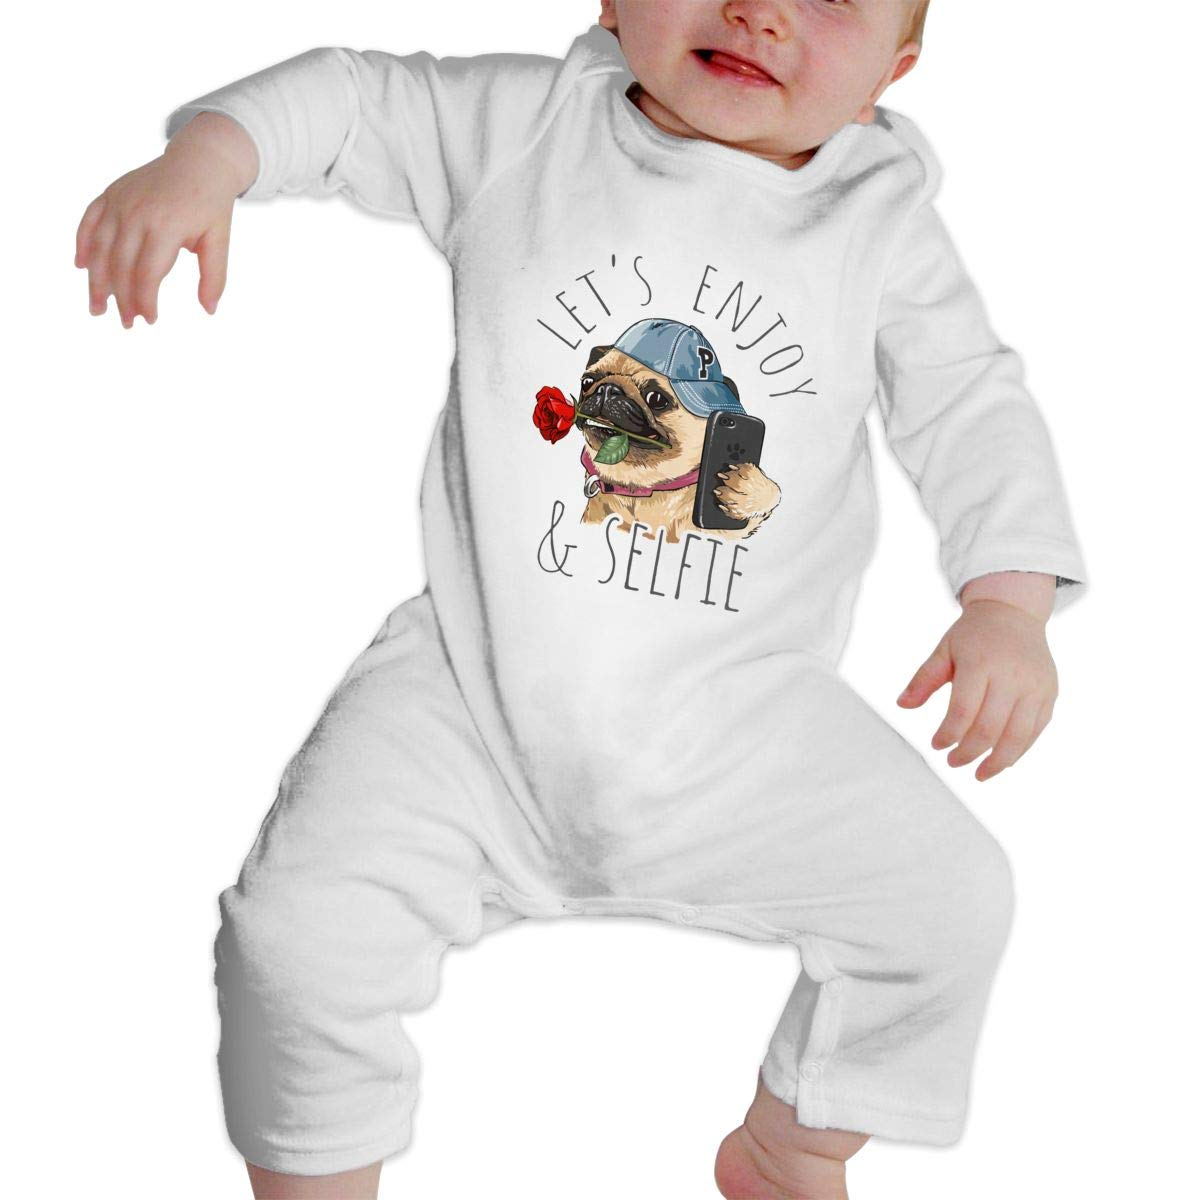 NOALKJ Babys Long Sleeve Romper,Cute-Dogs Jumpsuit Bodysuit Clothes